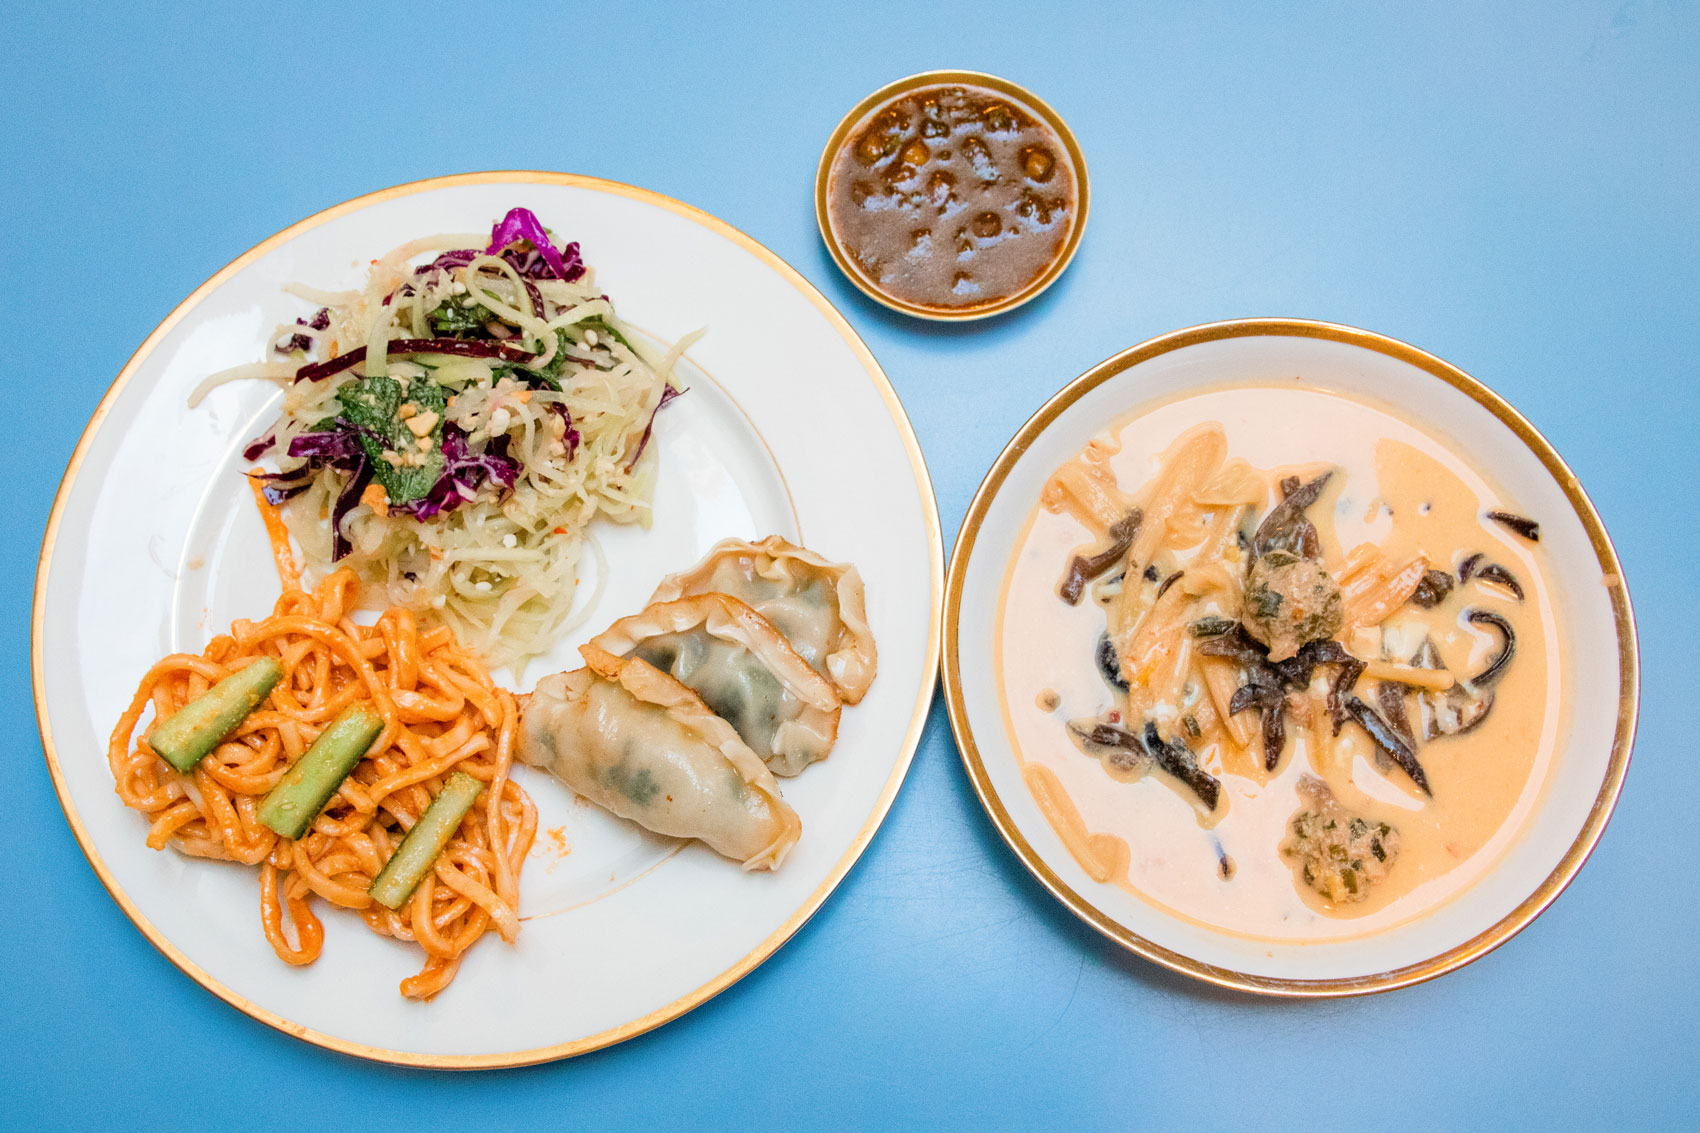 Plates filled with take-and-make orders from Myers + Chang.